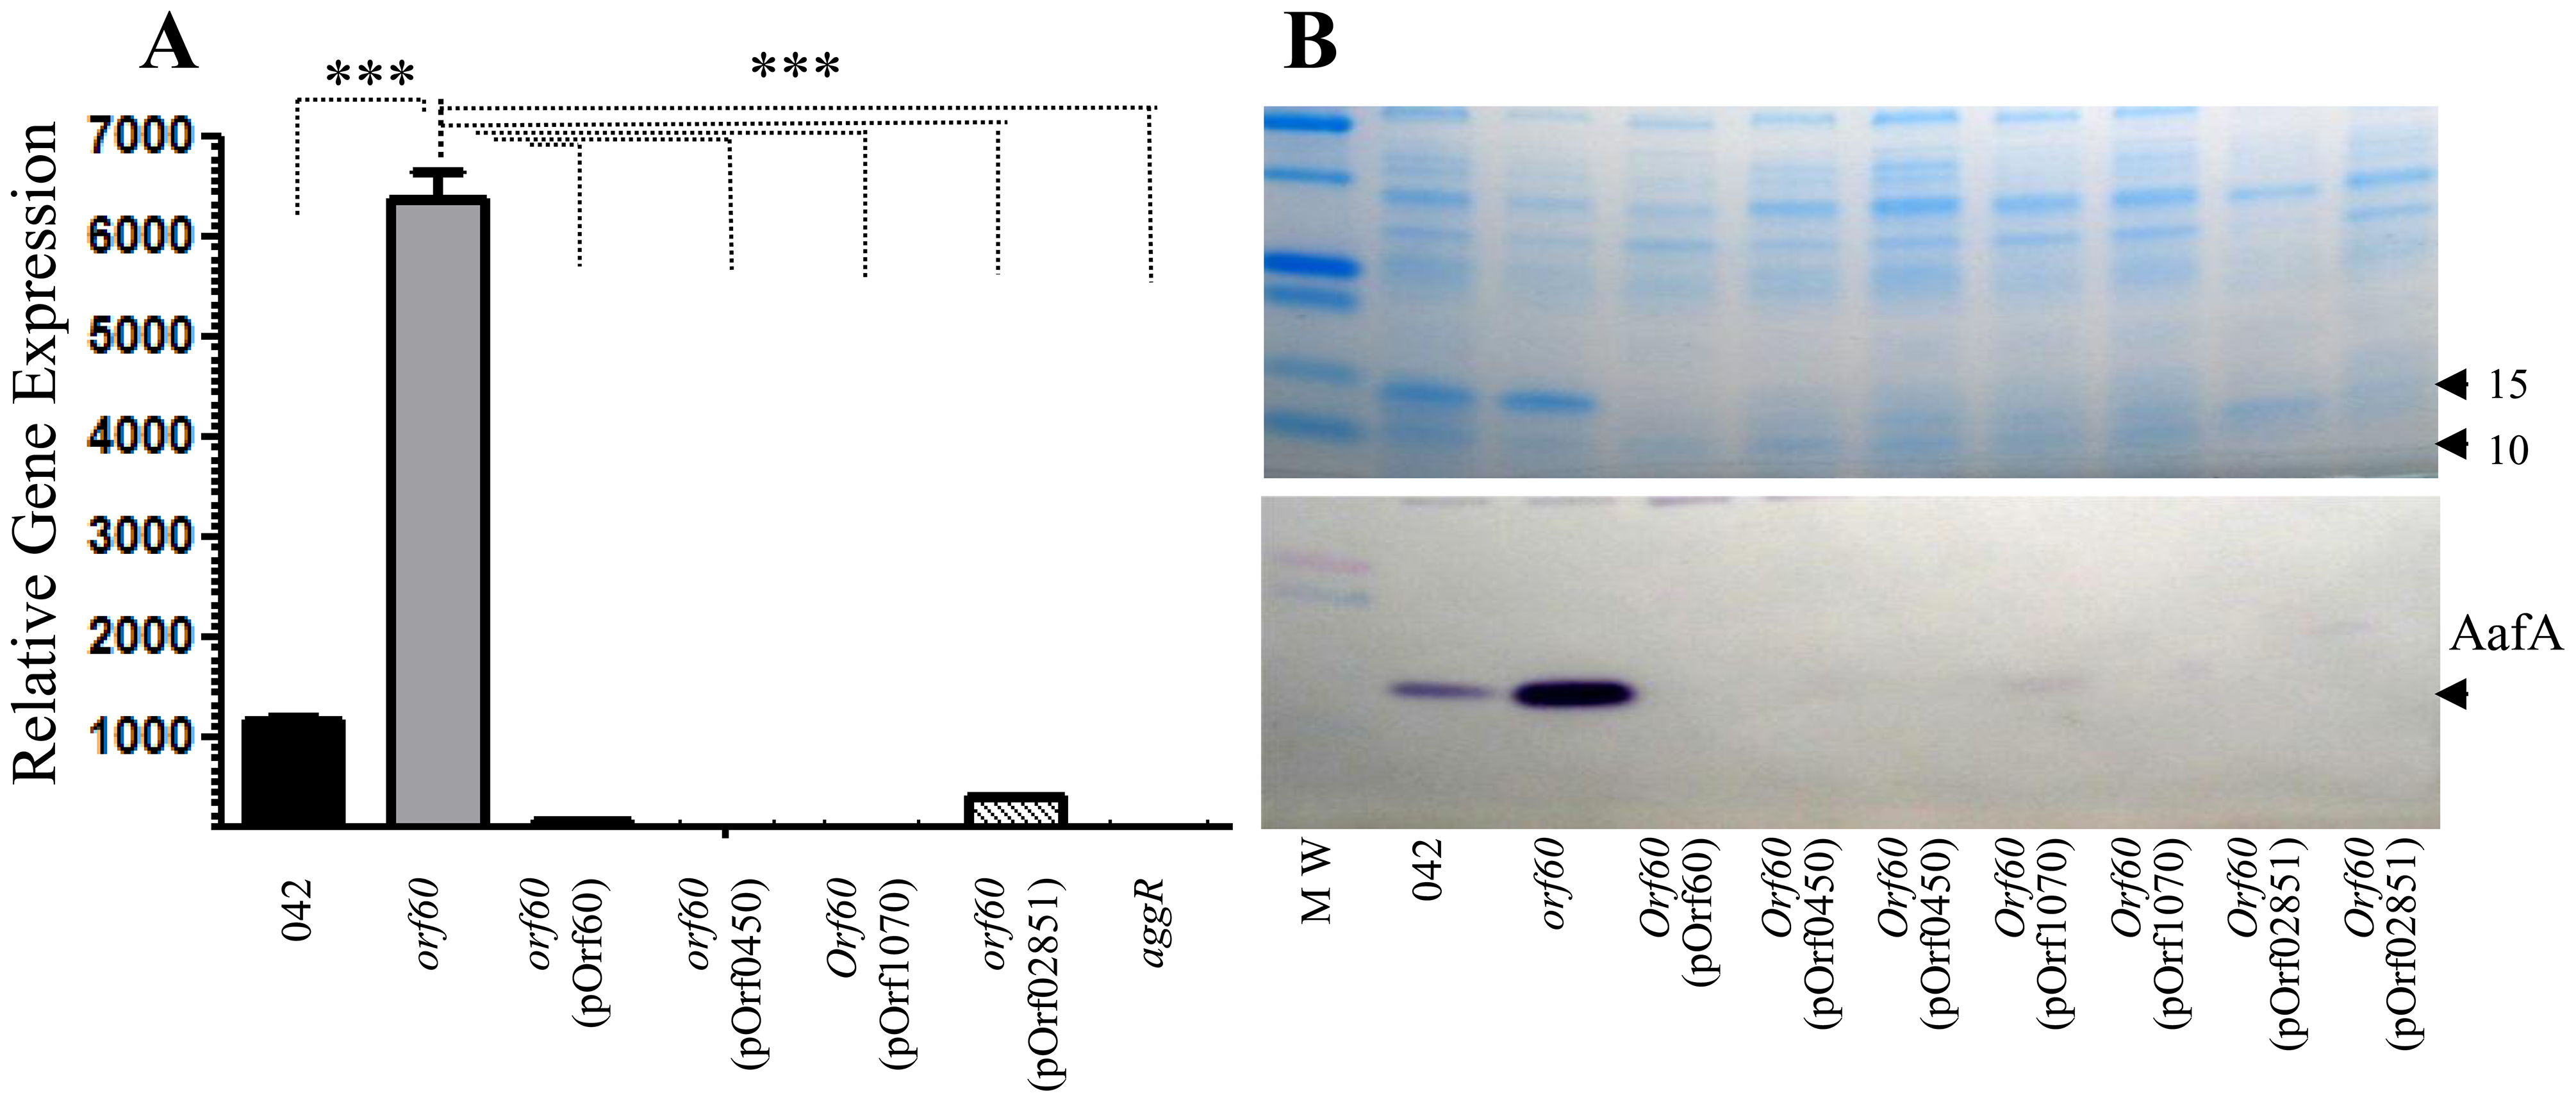 orf60 homologs from ETEC and <i>C. rodentium</i> repress AggR.